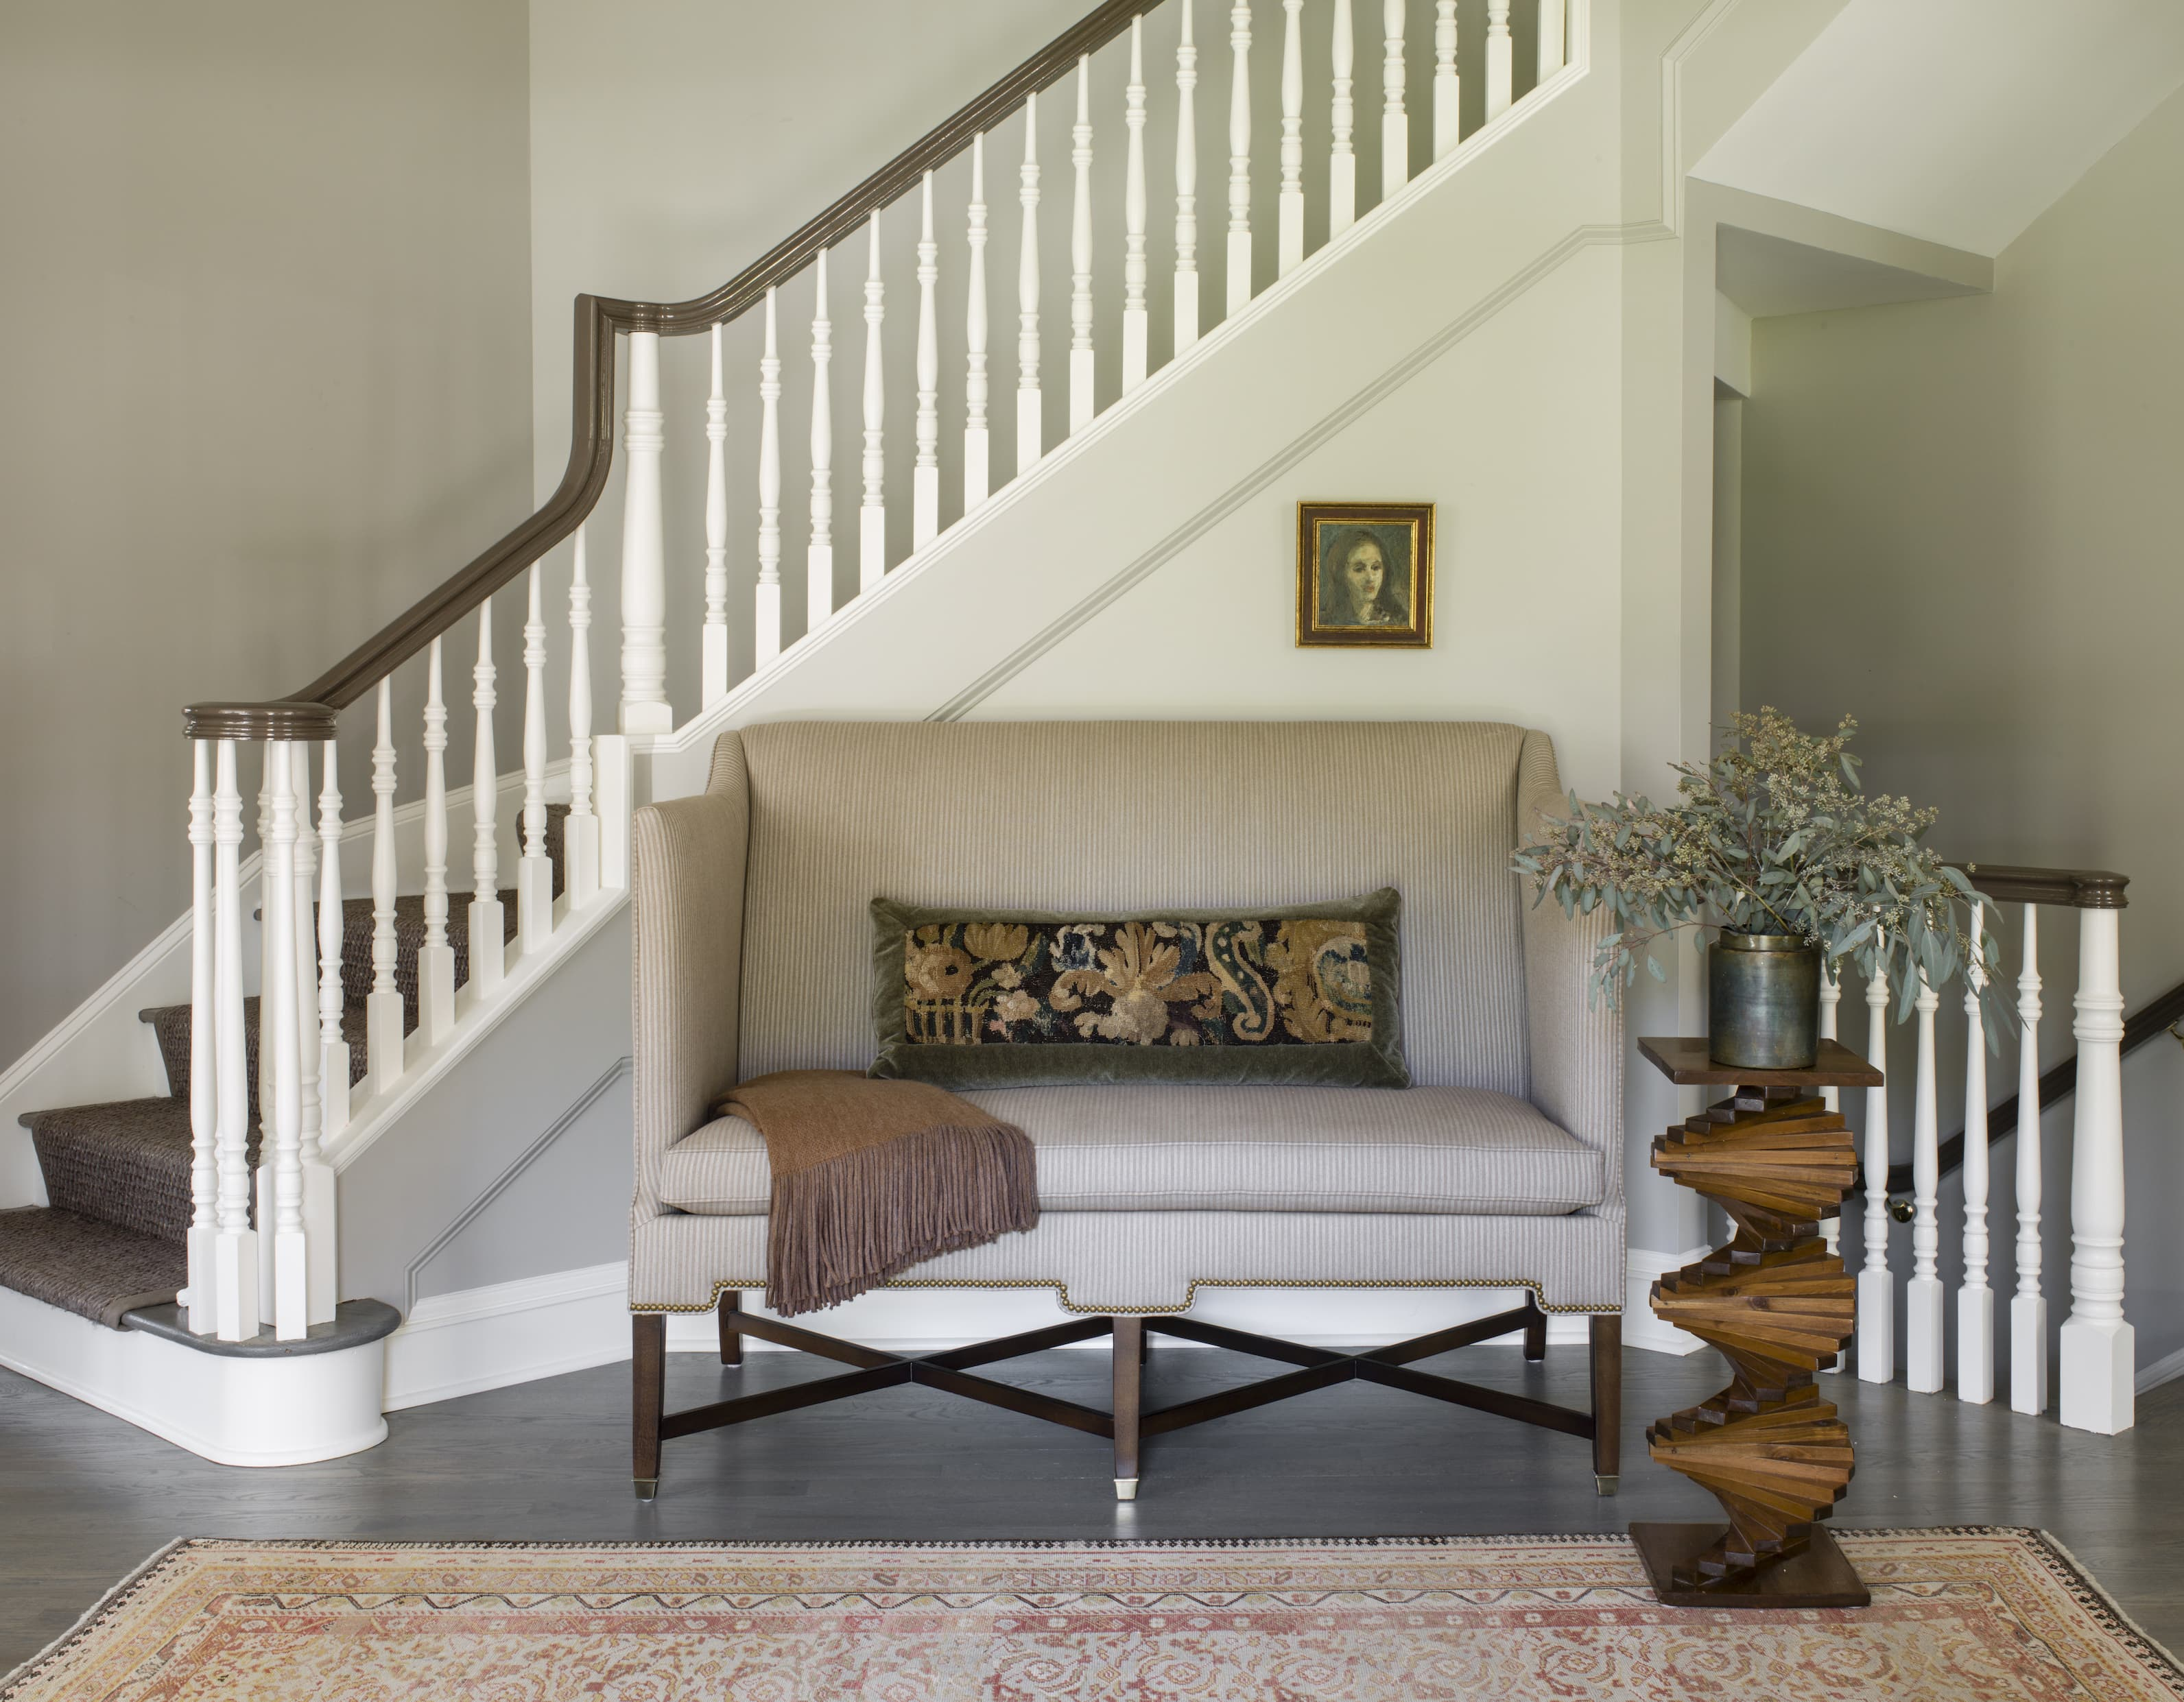 A sofa in front of a white staircase.